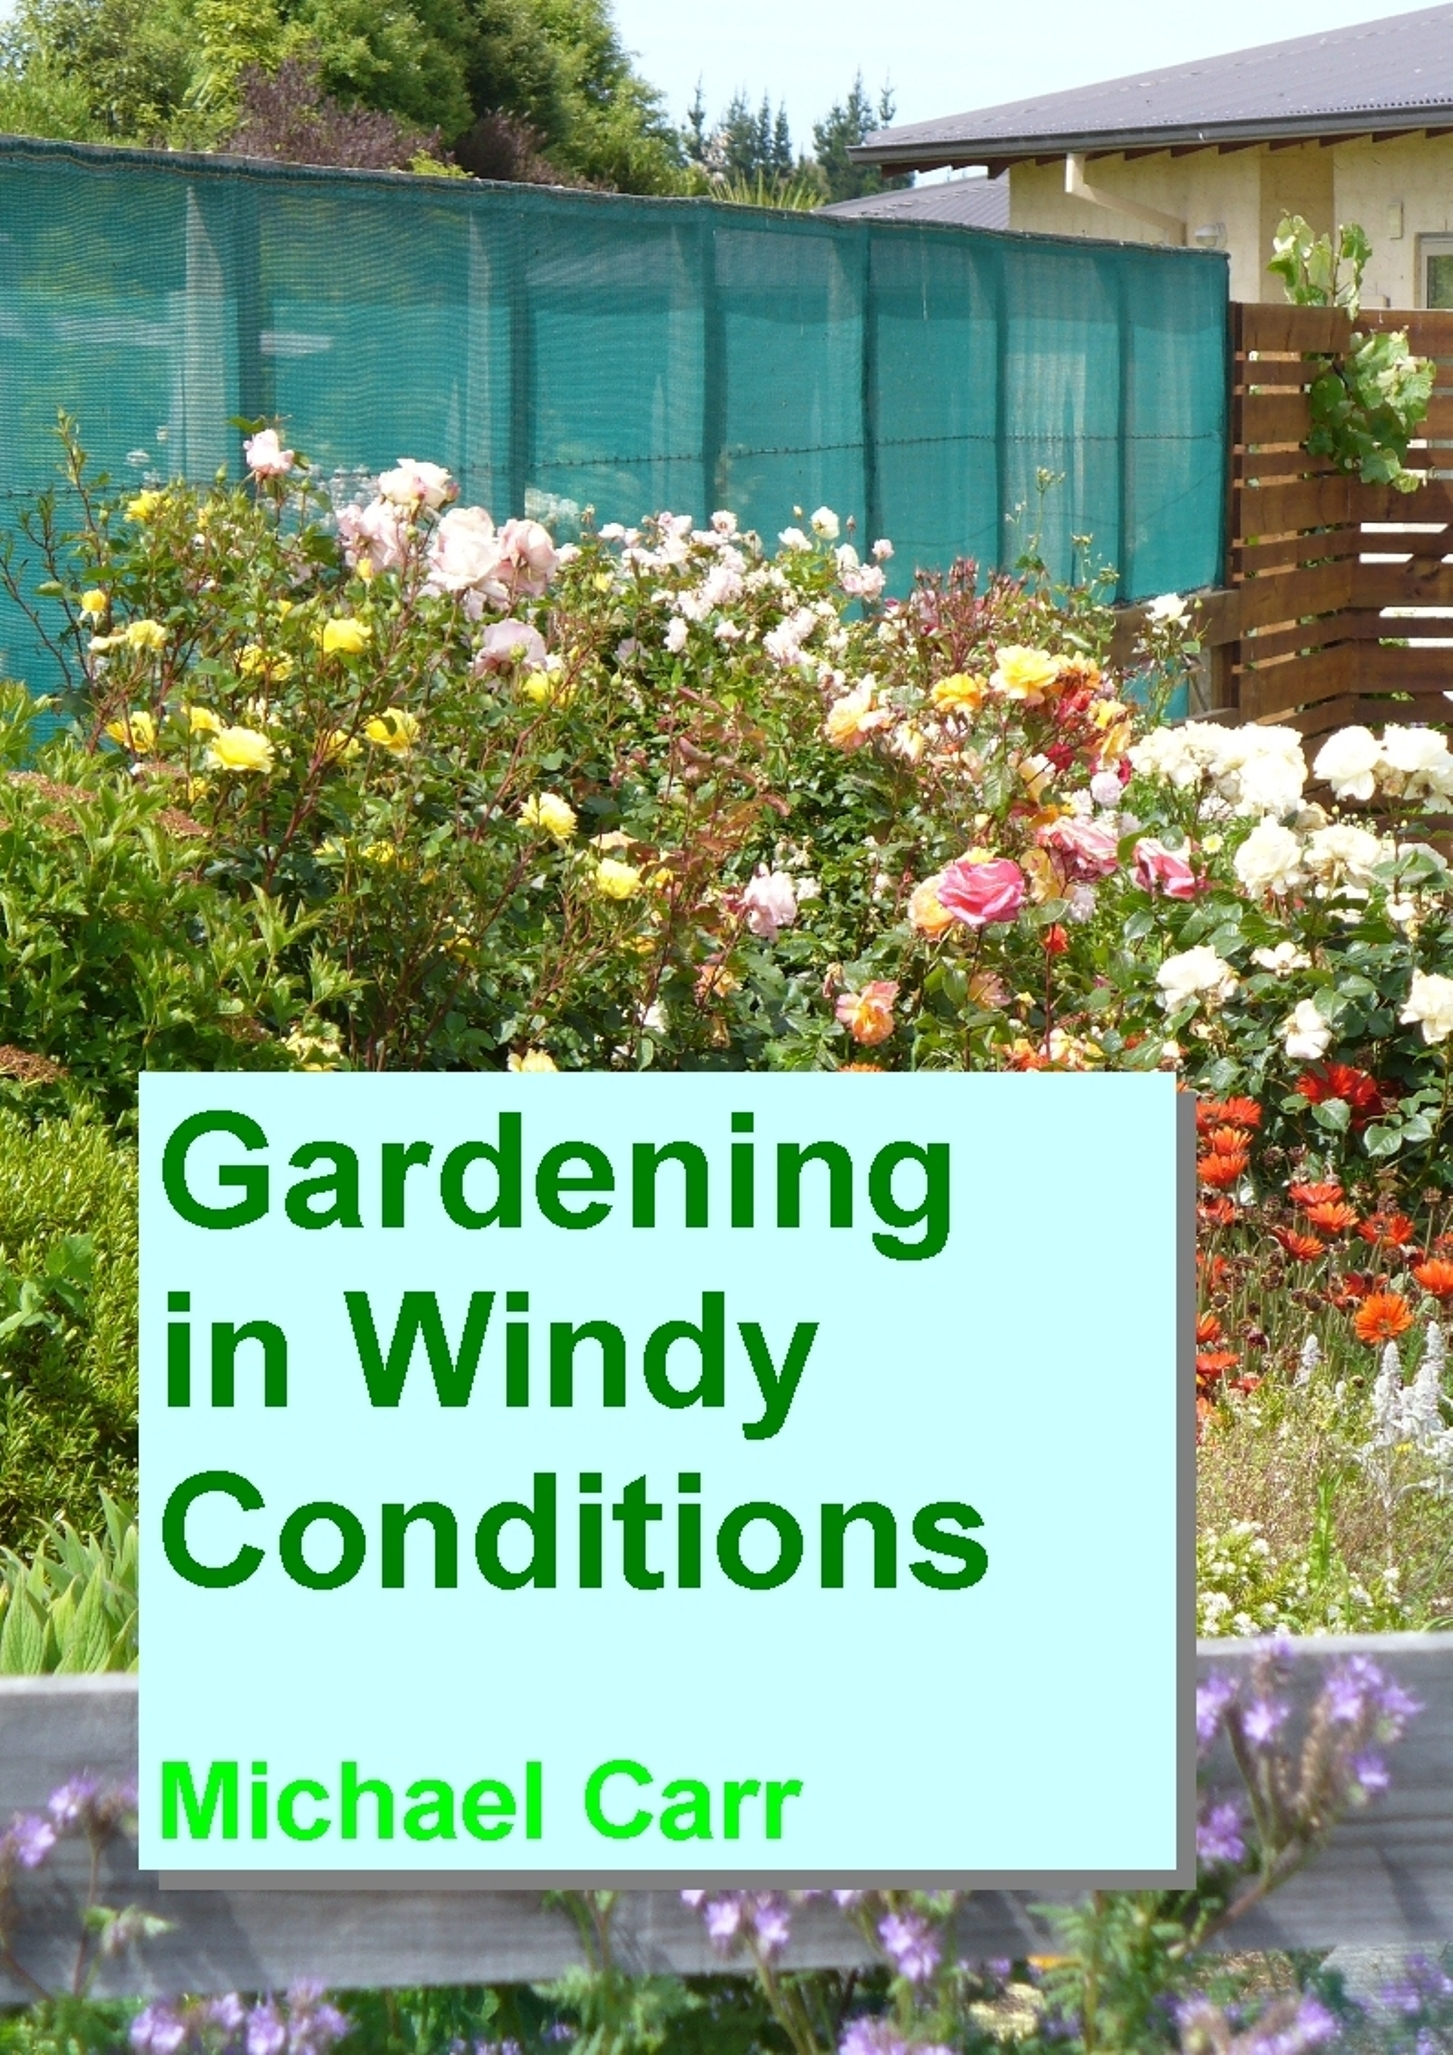 Gardening in Windy Conditions